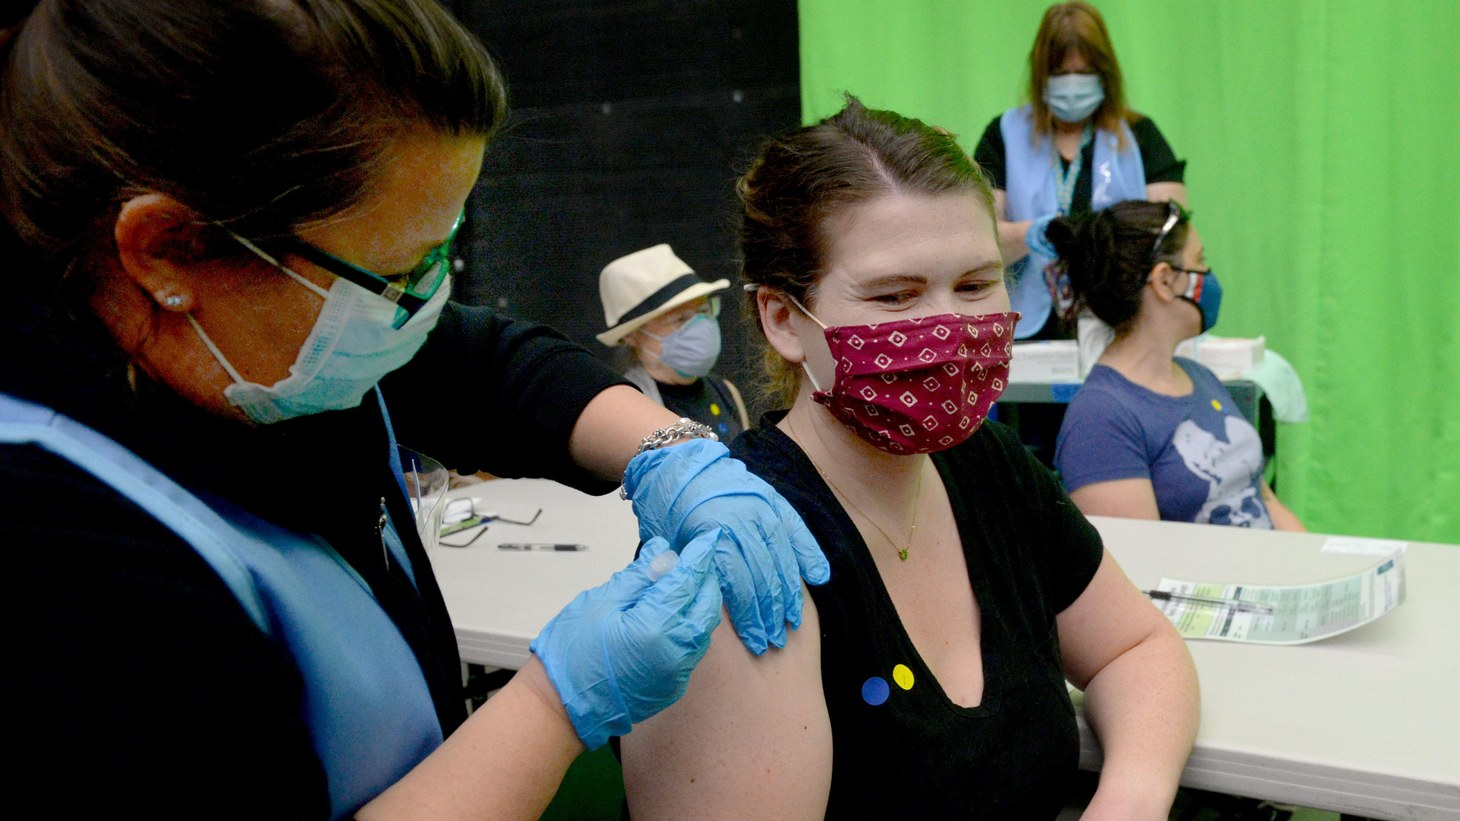 Lisa Vallejo, a nurse for the Simi Valley Unified School District, gives substitute teacher Caroline Sheller a COVID-19 vaccine at the district's two-day vaccine clinic for teachers and staff on Saturday, Feb. 27, 2021.